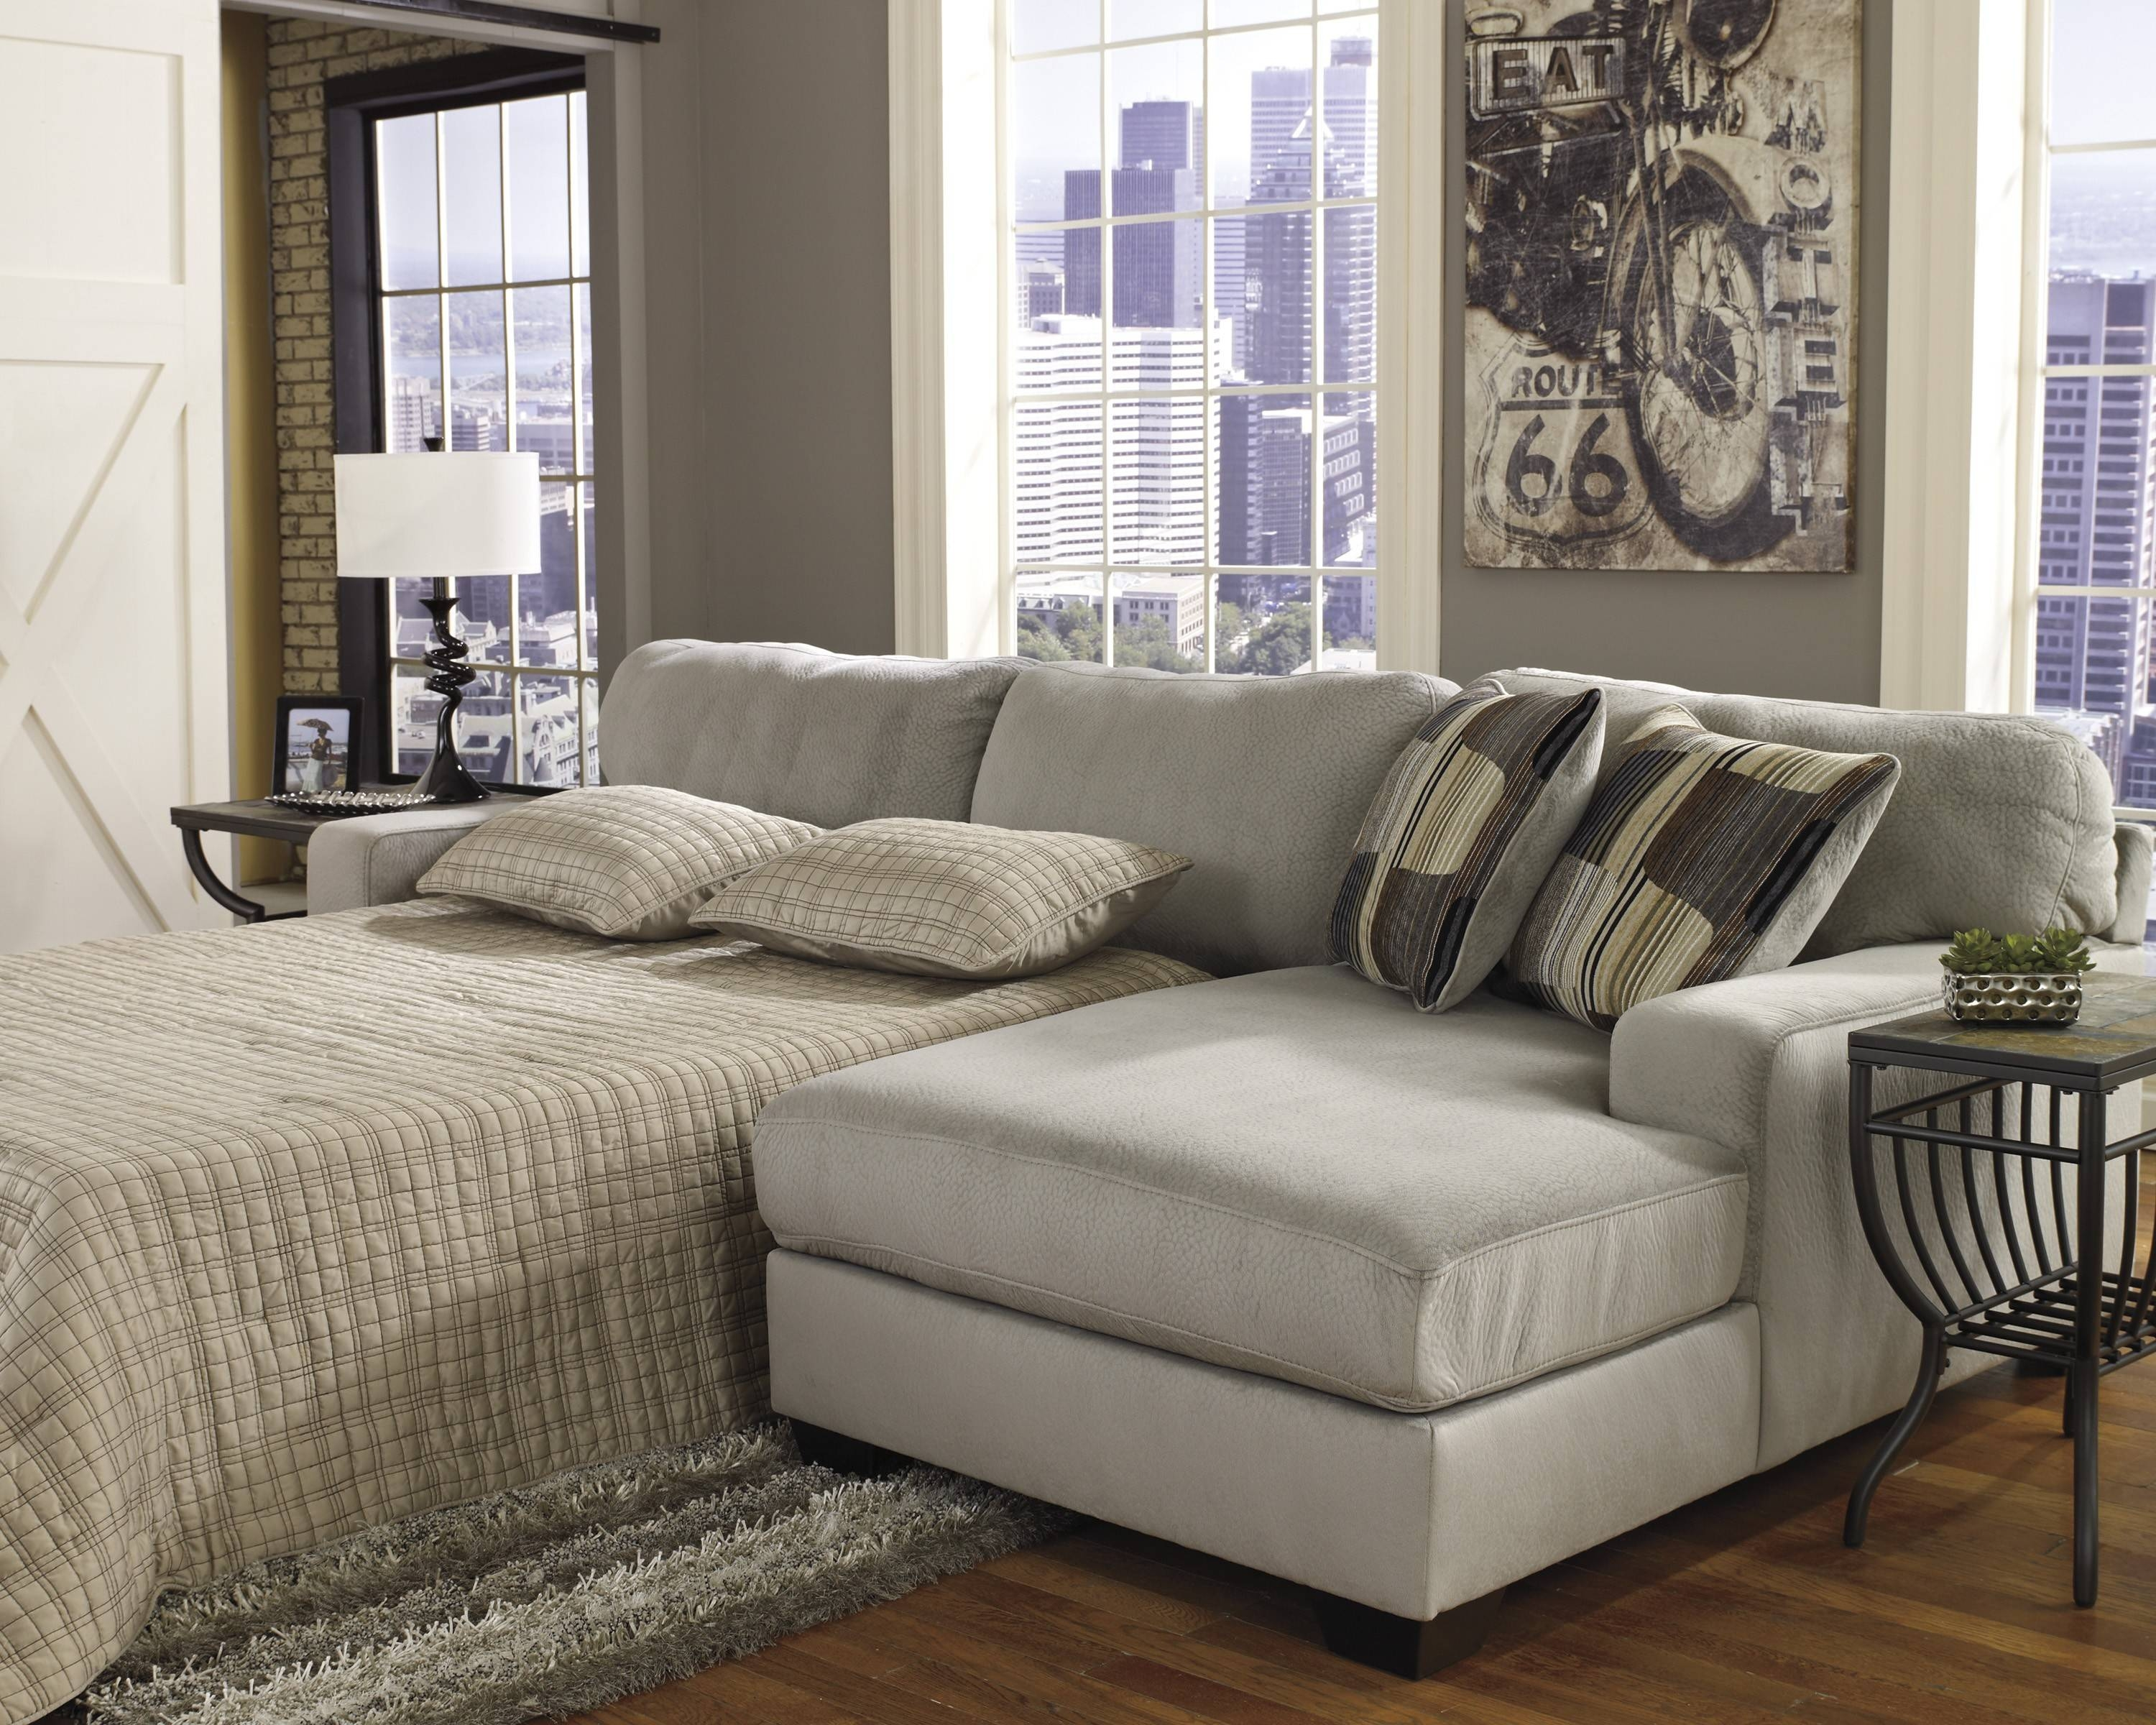 Emejing Apartment Size Sectional Sofas Photos – Home Iterior Pertaining To Apartment Sofa Sectional (Image 14 of 30)